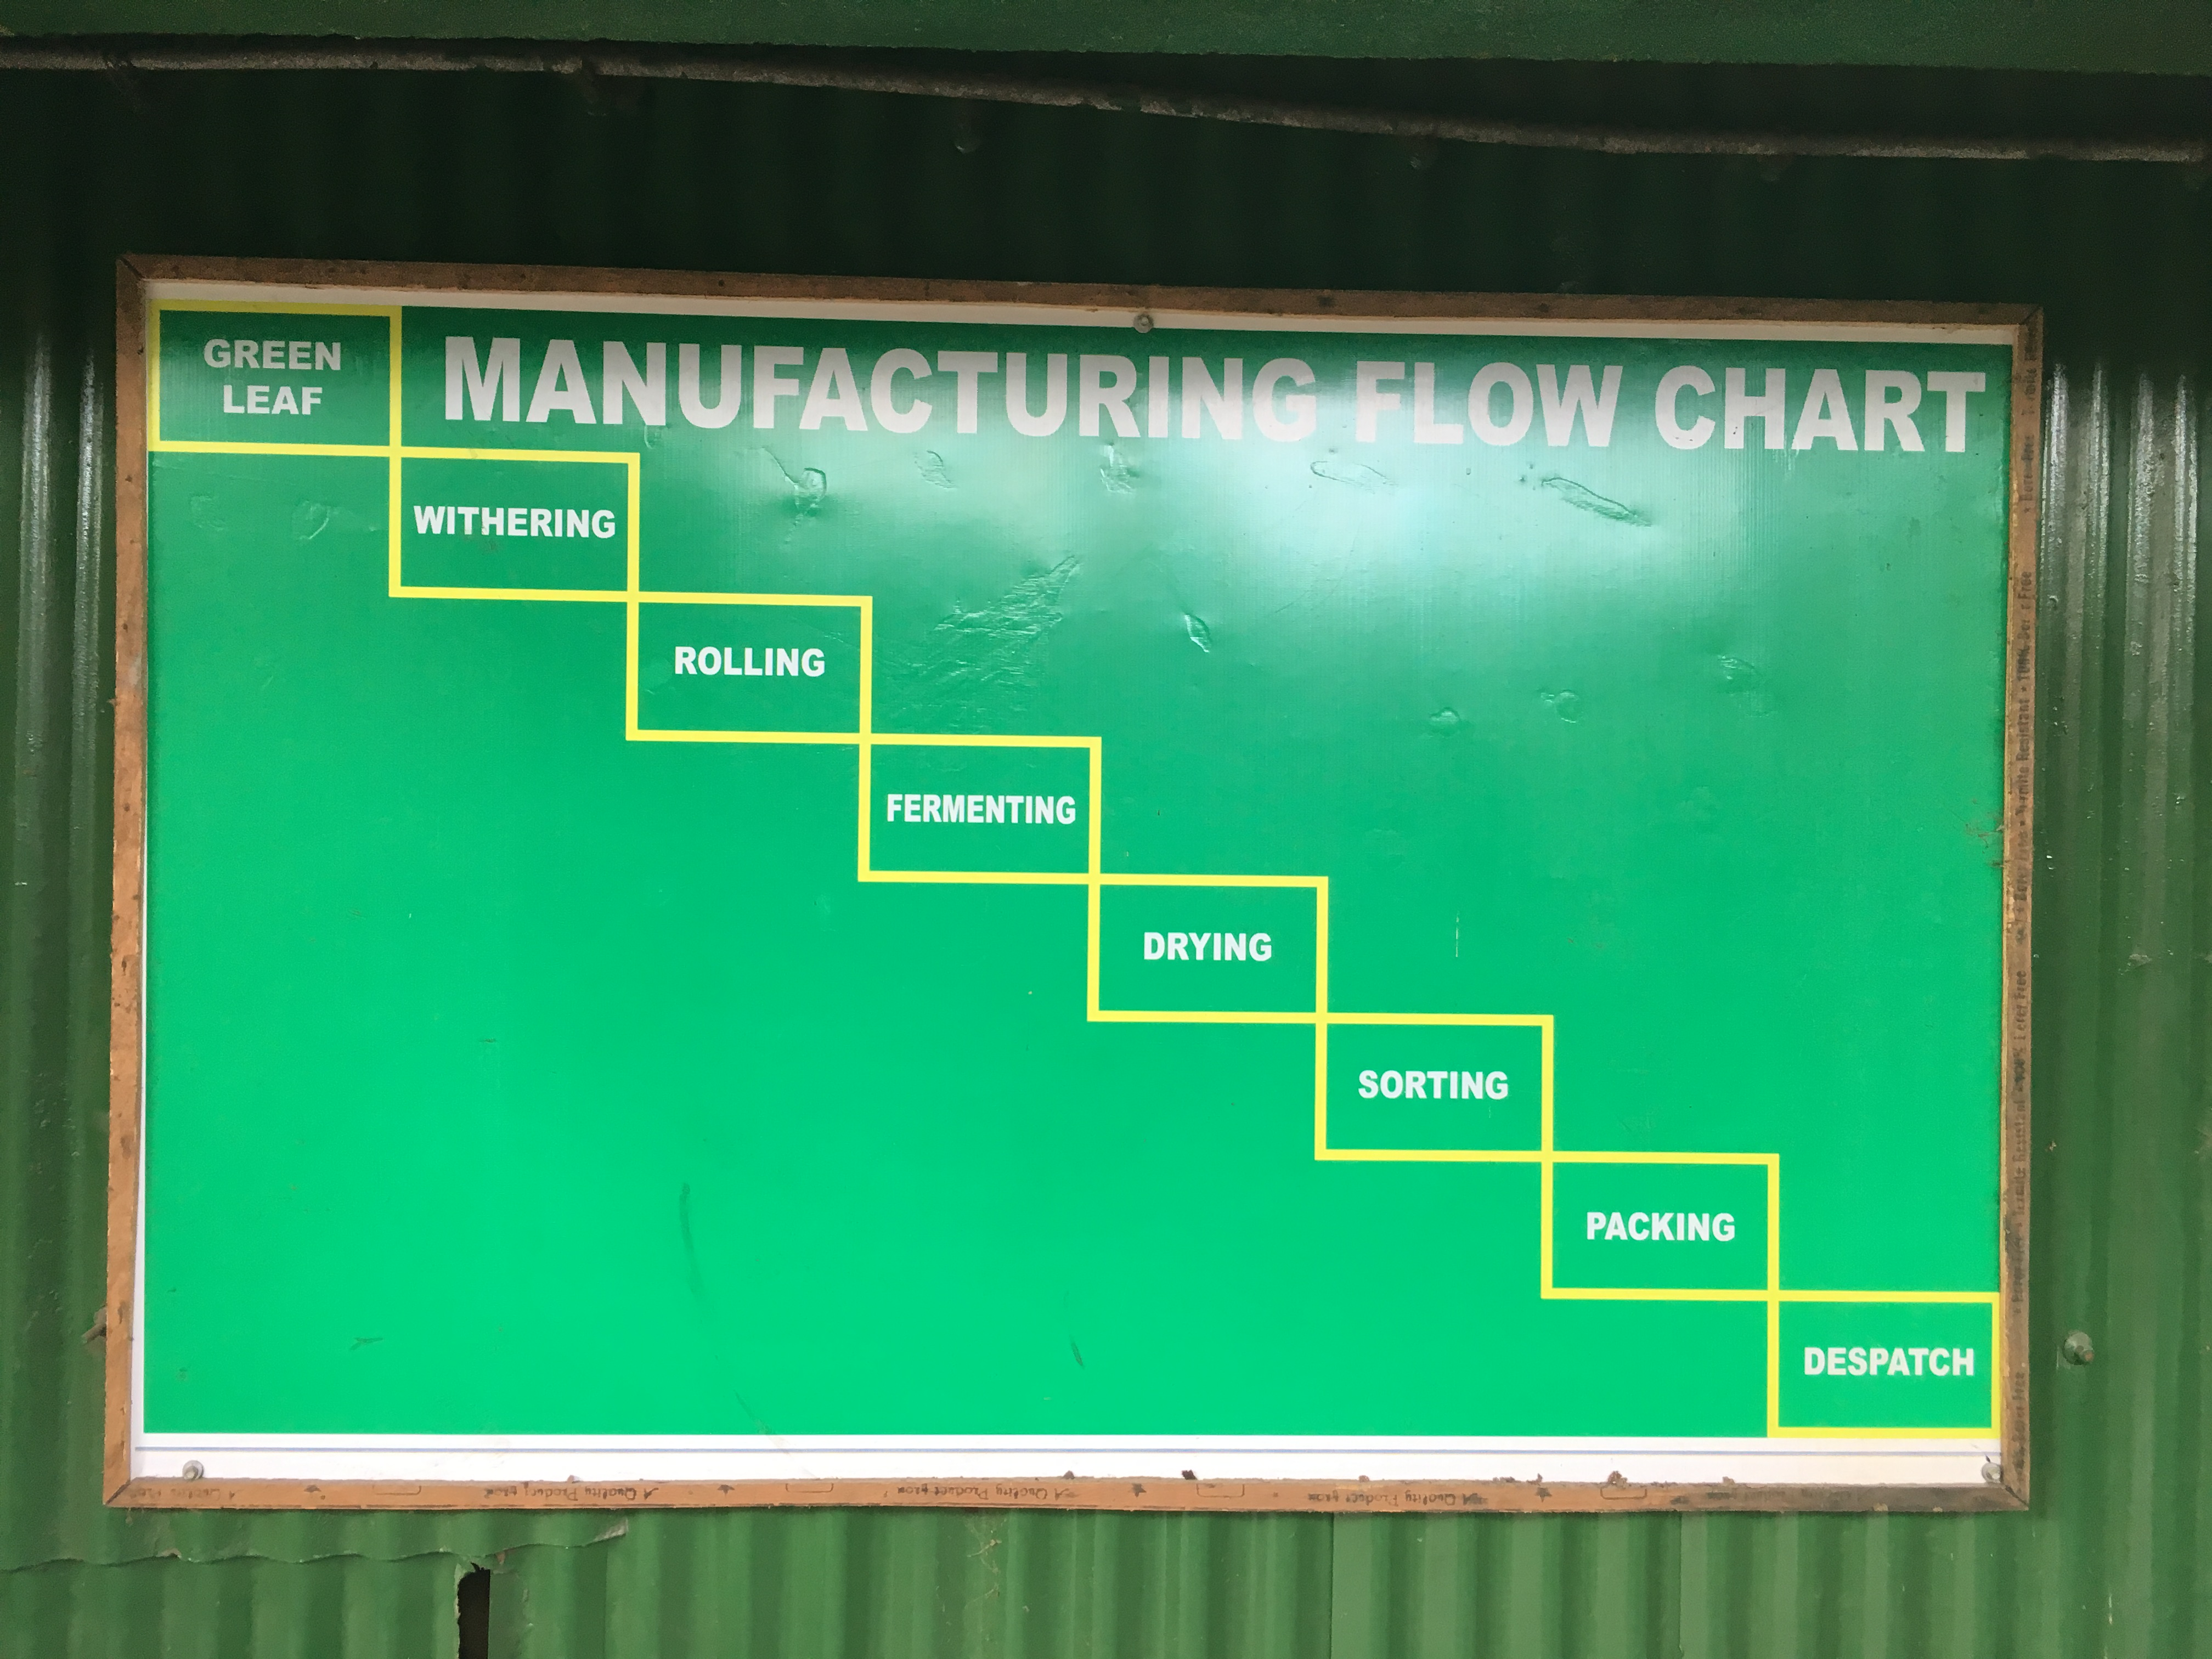 Manufacturing flow chart of tea production